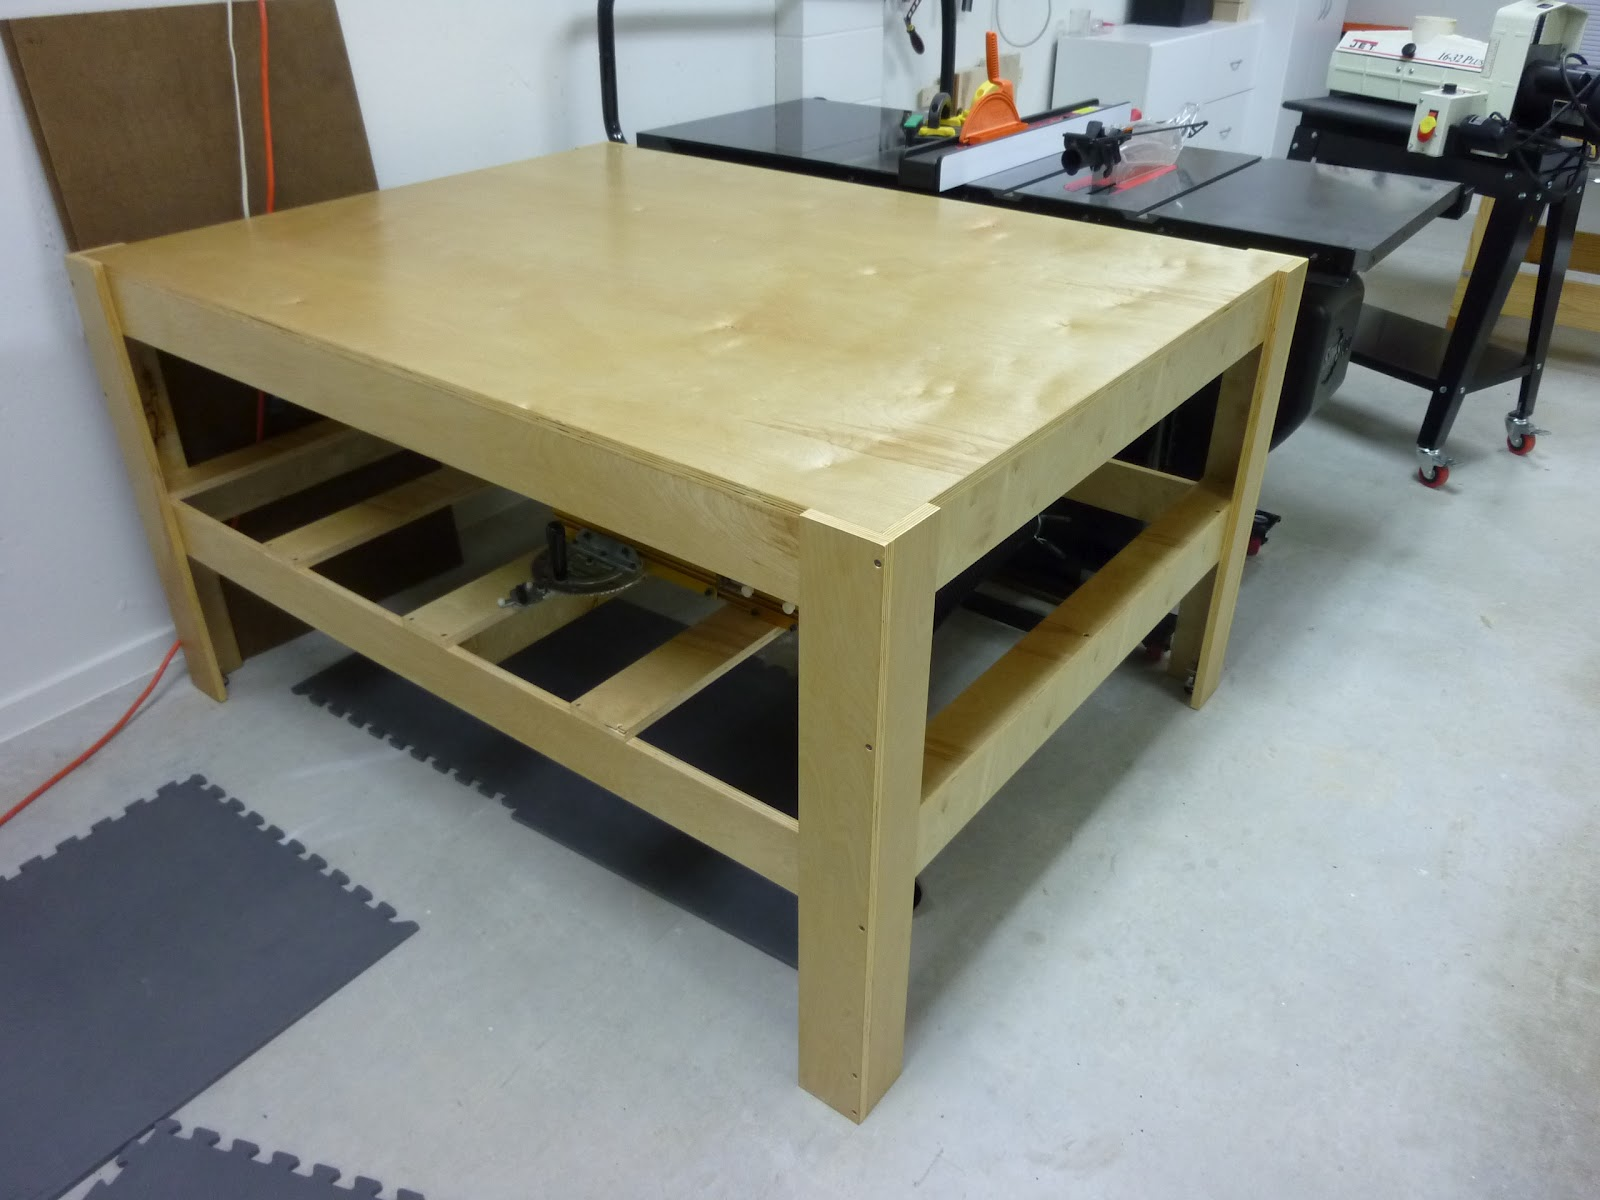 Elegant Then, He Sawed A Hole In The Middle Of The Top Of The Table, Cut A Hole Out Of An Old Tablecloth  A Month Later, The Two Of Them Opened A Woodworking Business All Was Right With The World However, Like We Know, Life Is Unpredictable